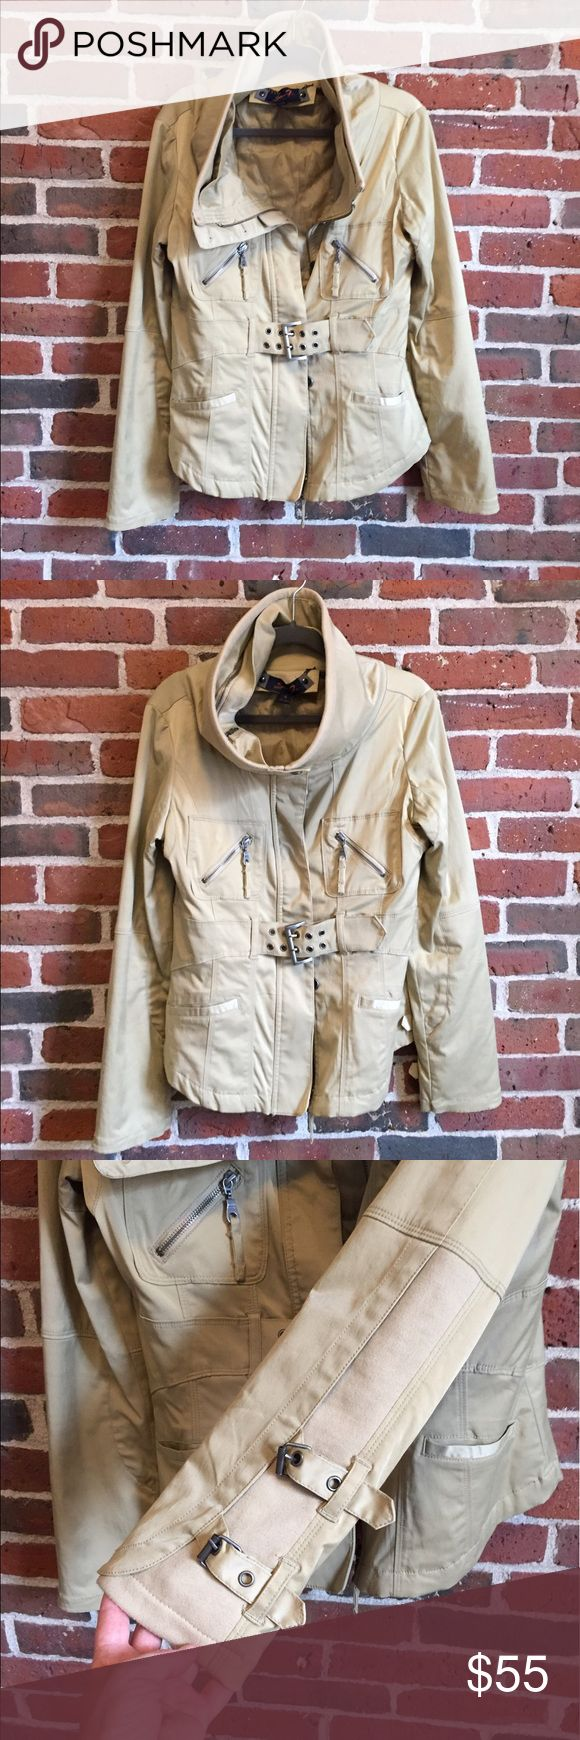 Safari/Cargo style jacket Loads of cool details on this jacket. Thick exterior with a quilted lining that snaps in and out for colder temps. Never worn. Excellent condition. Seven7 Jackets & Coats